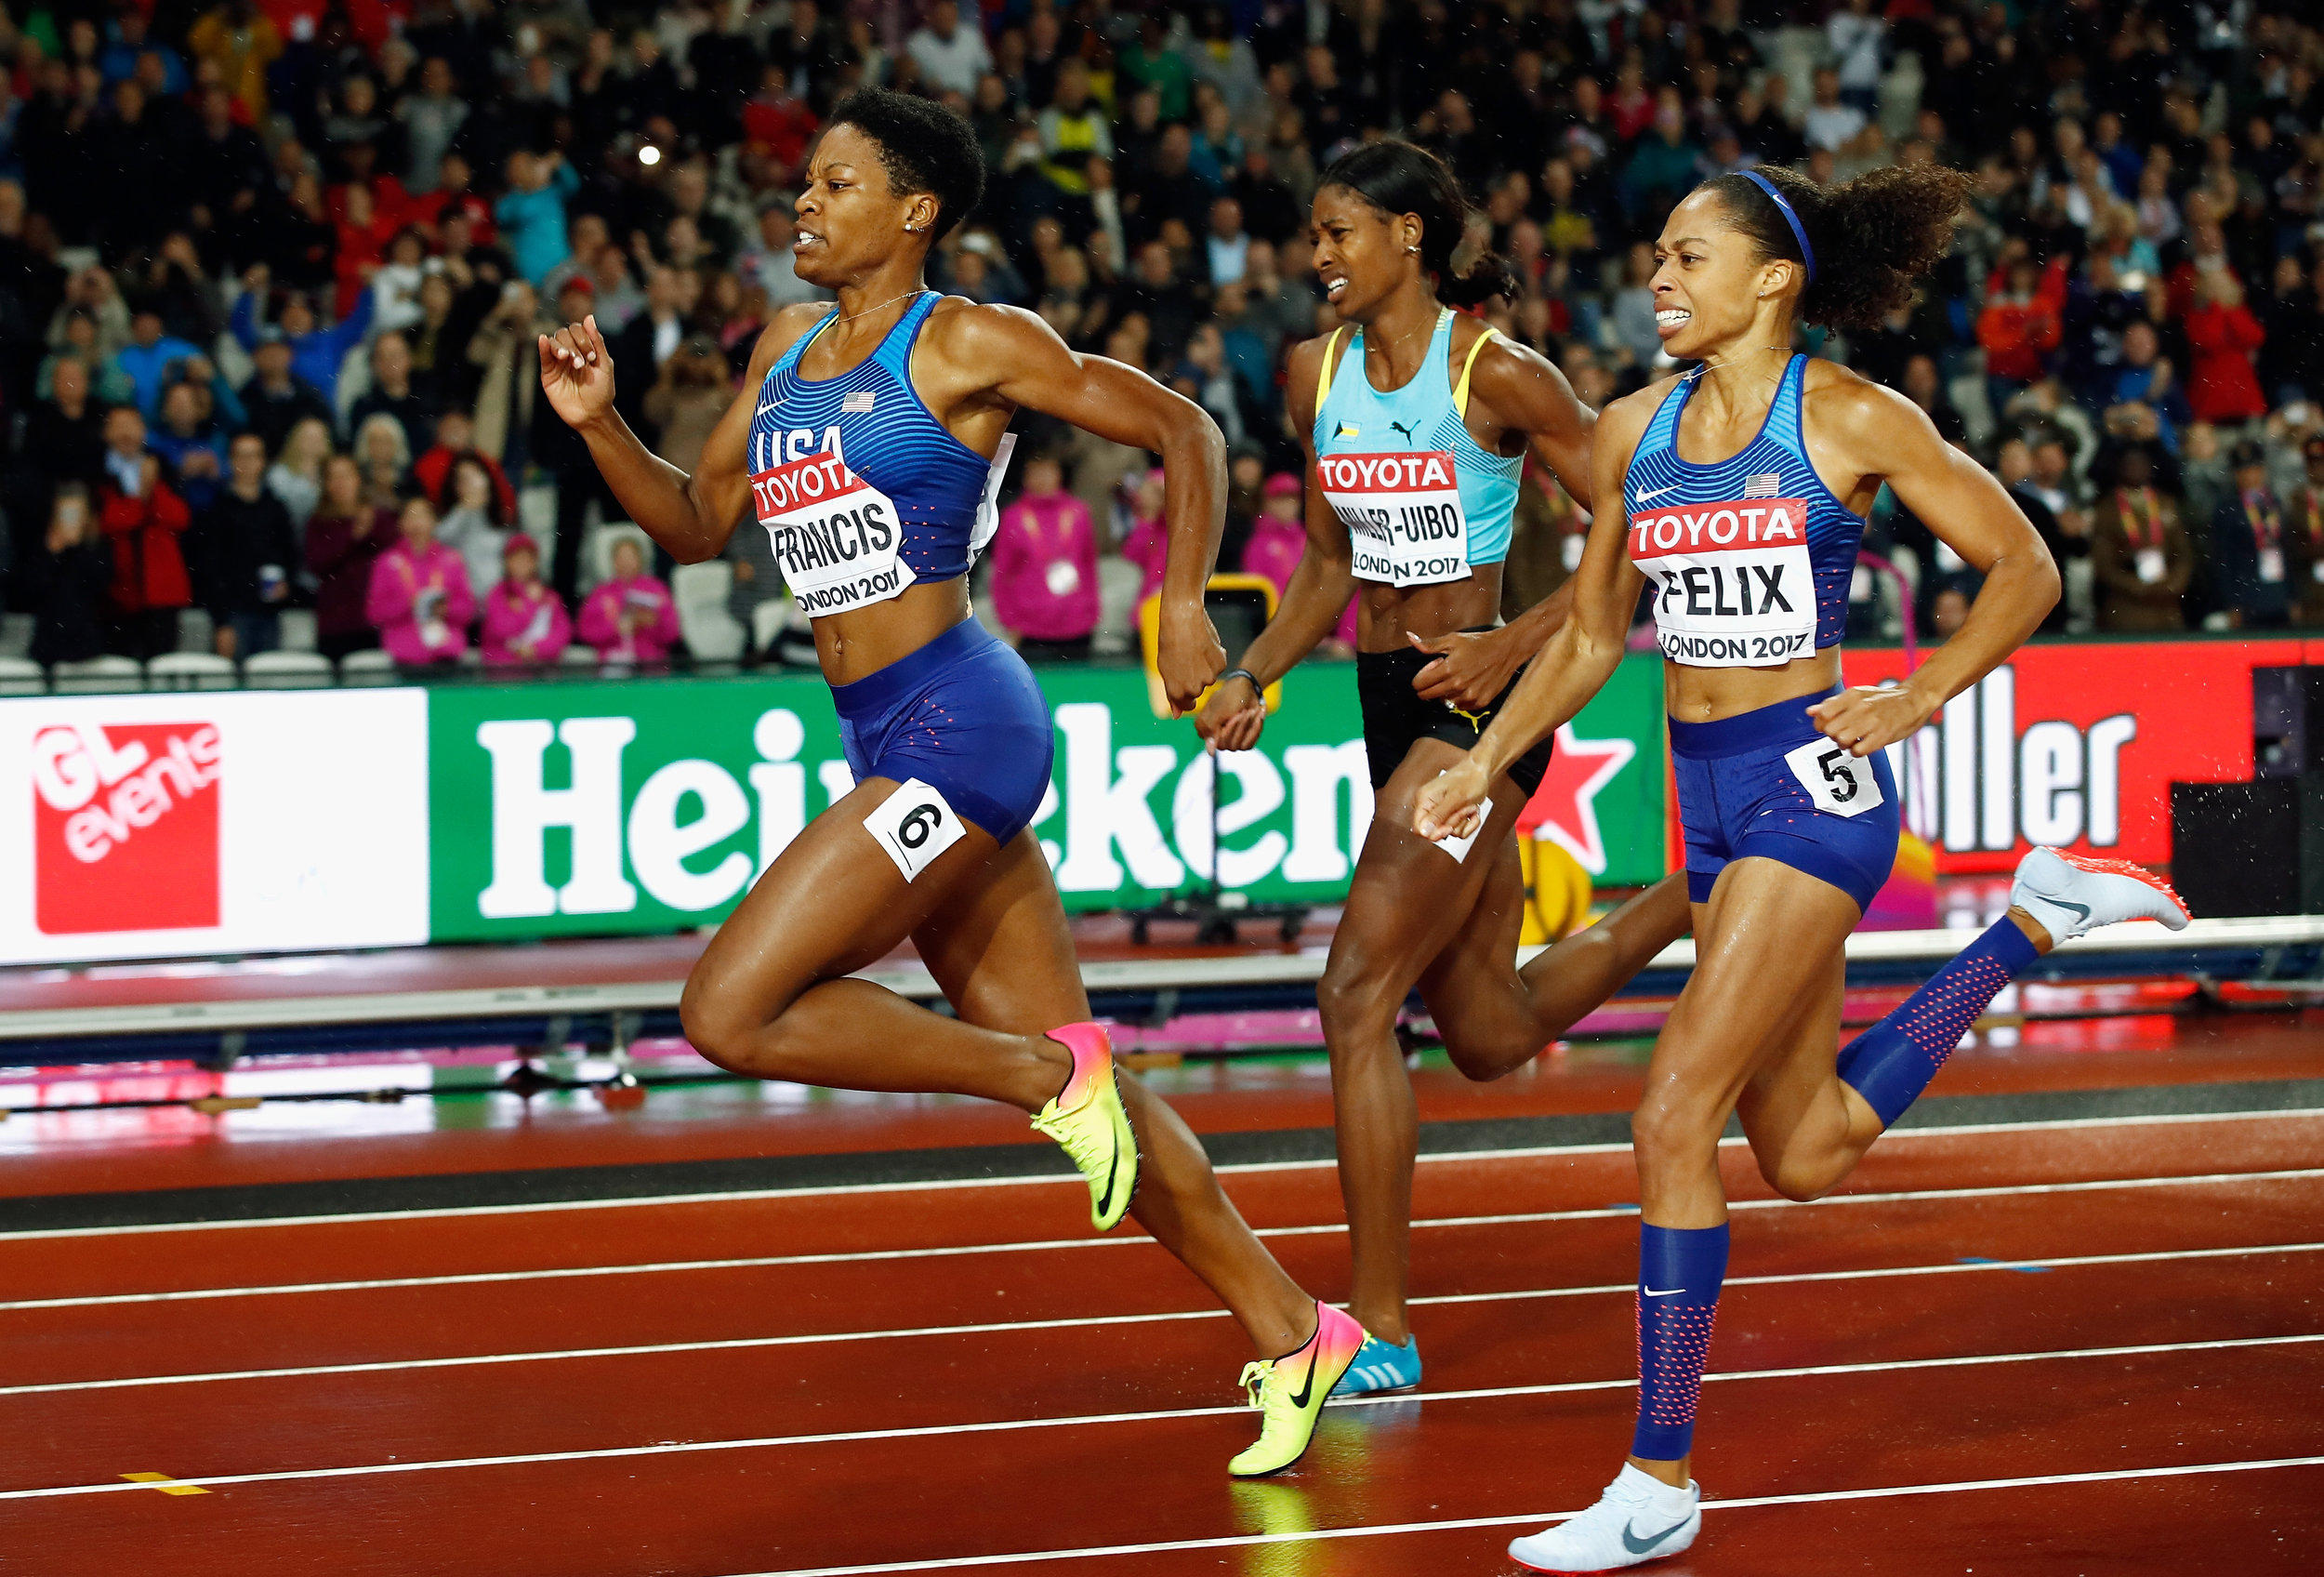 Phyllis Francis, Shaunae Miller-Uibo and Allyson Felix on the homestretch // Getty Images for IAAF